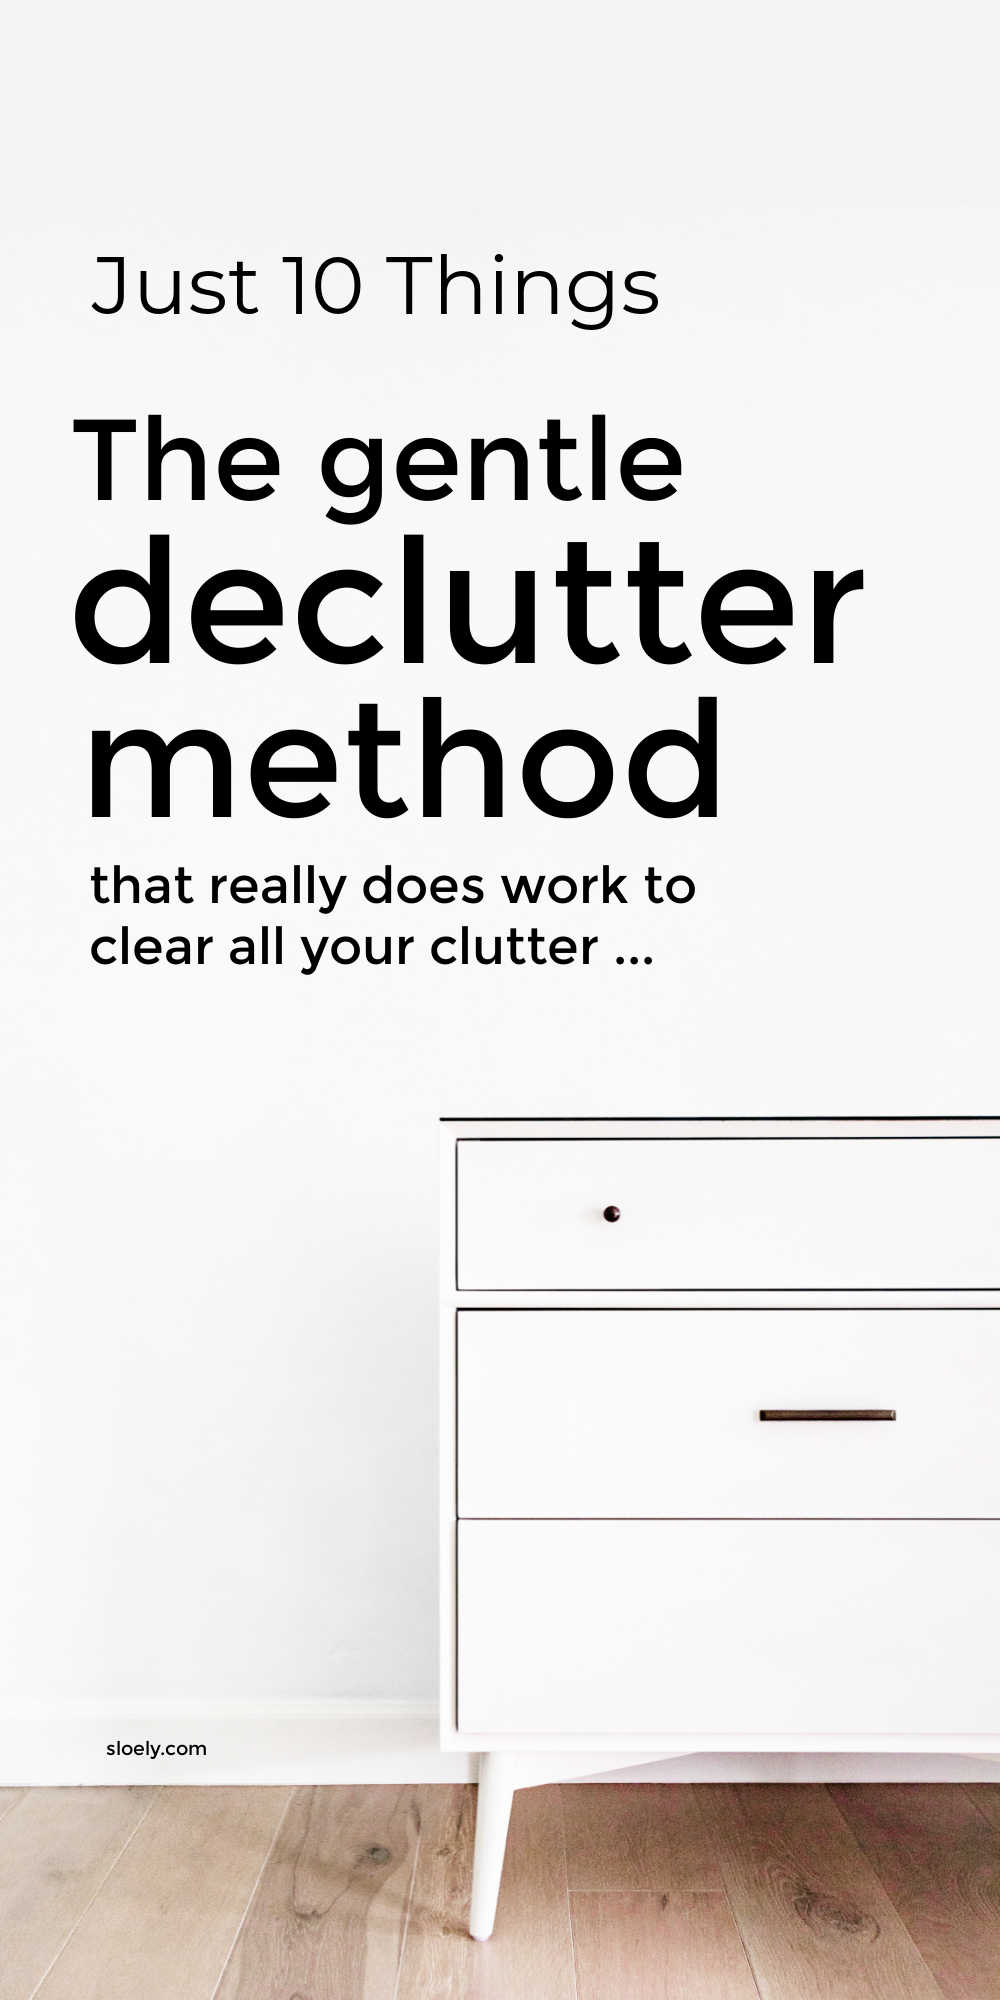 Gentle Declutter Method - Just 10 Things